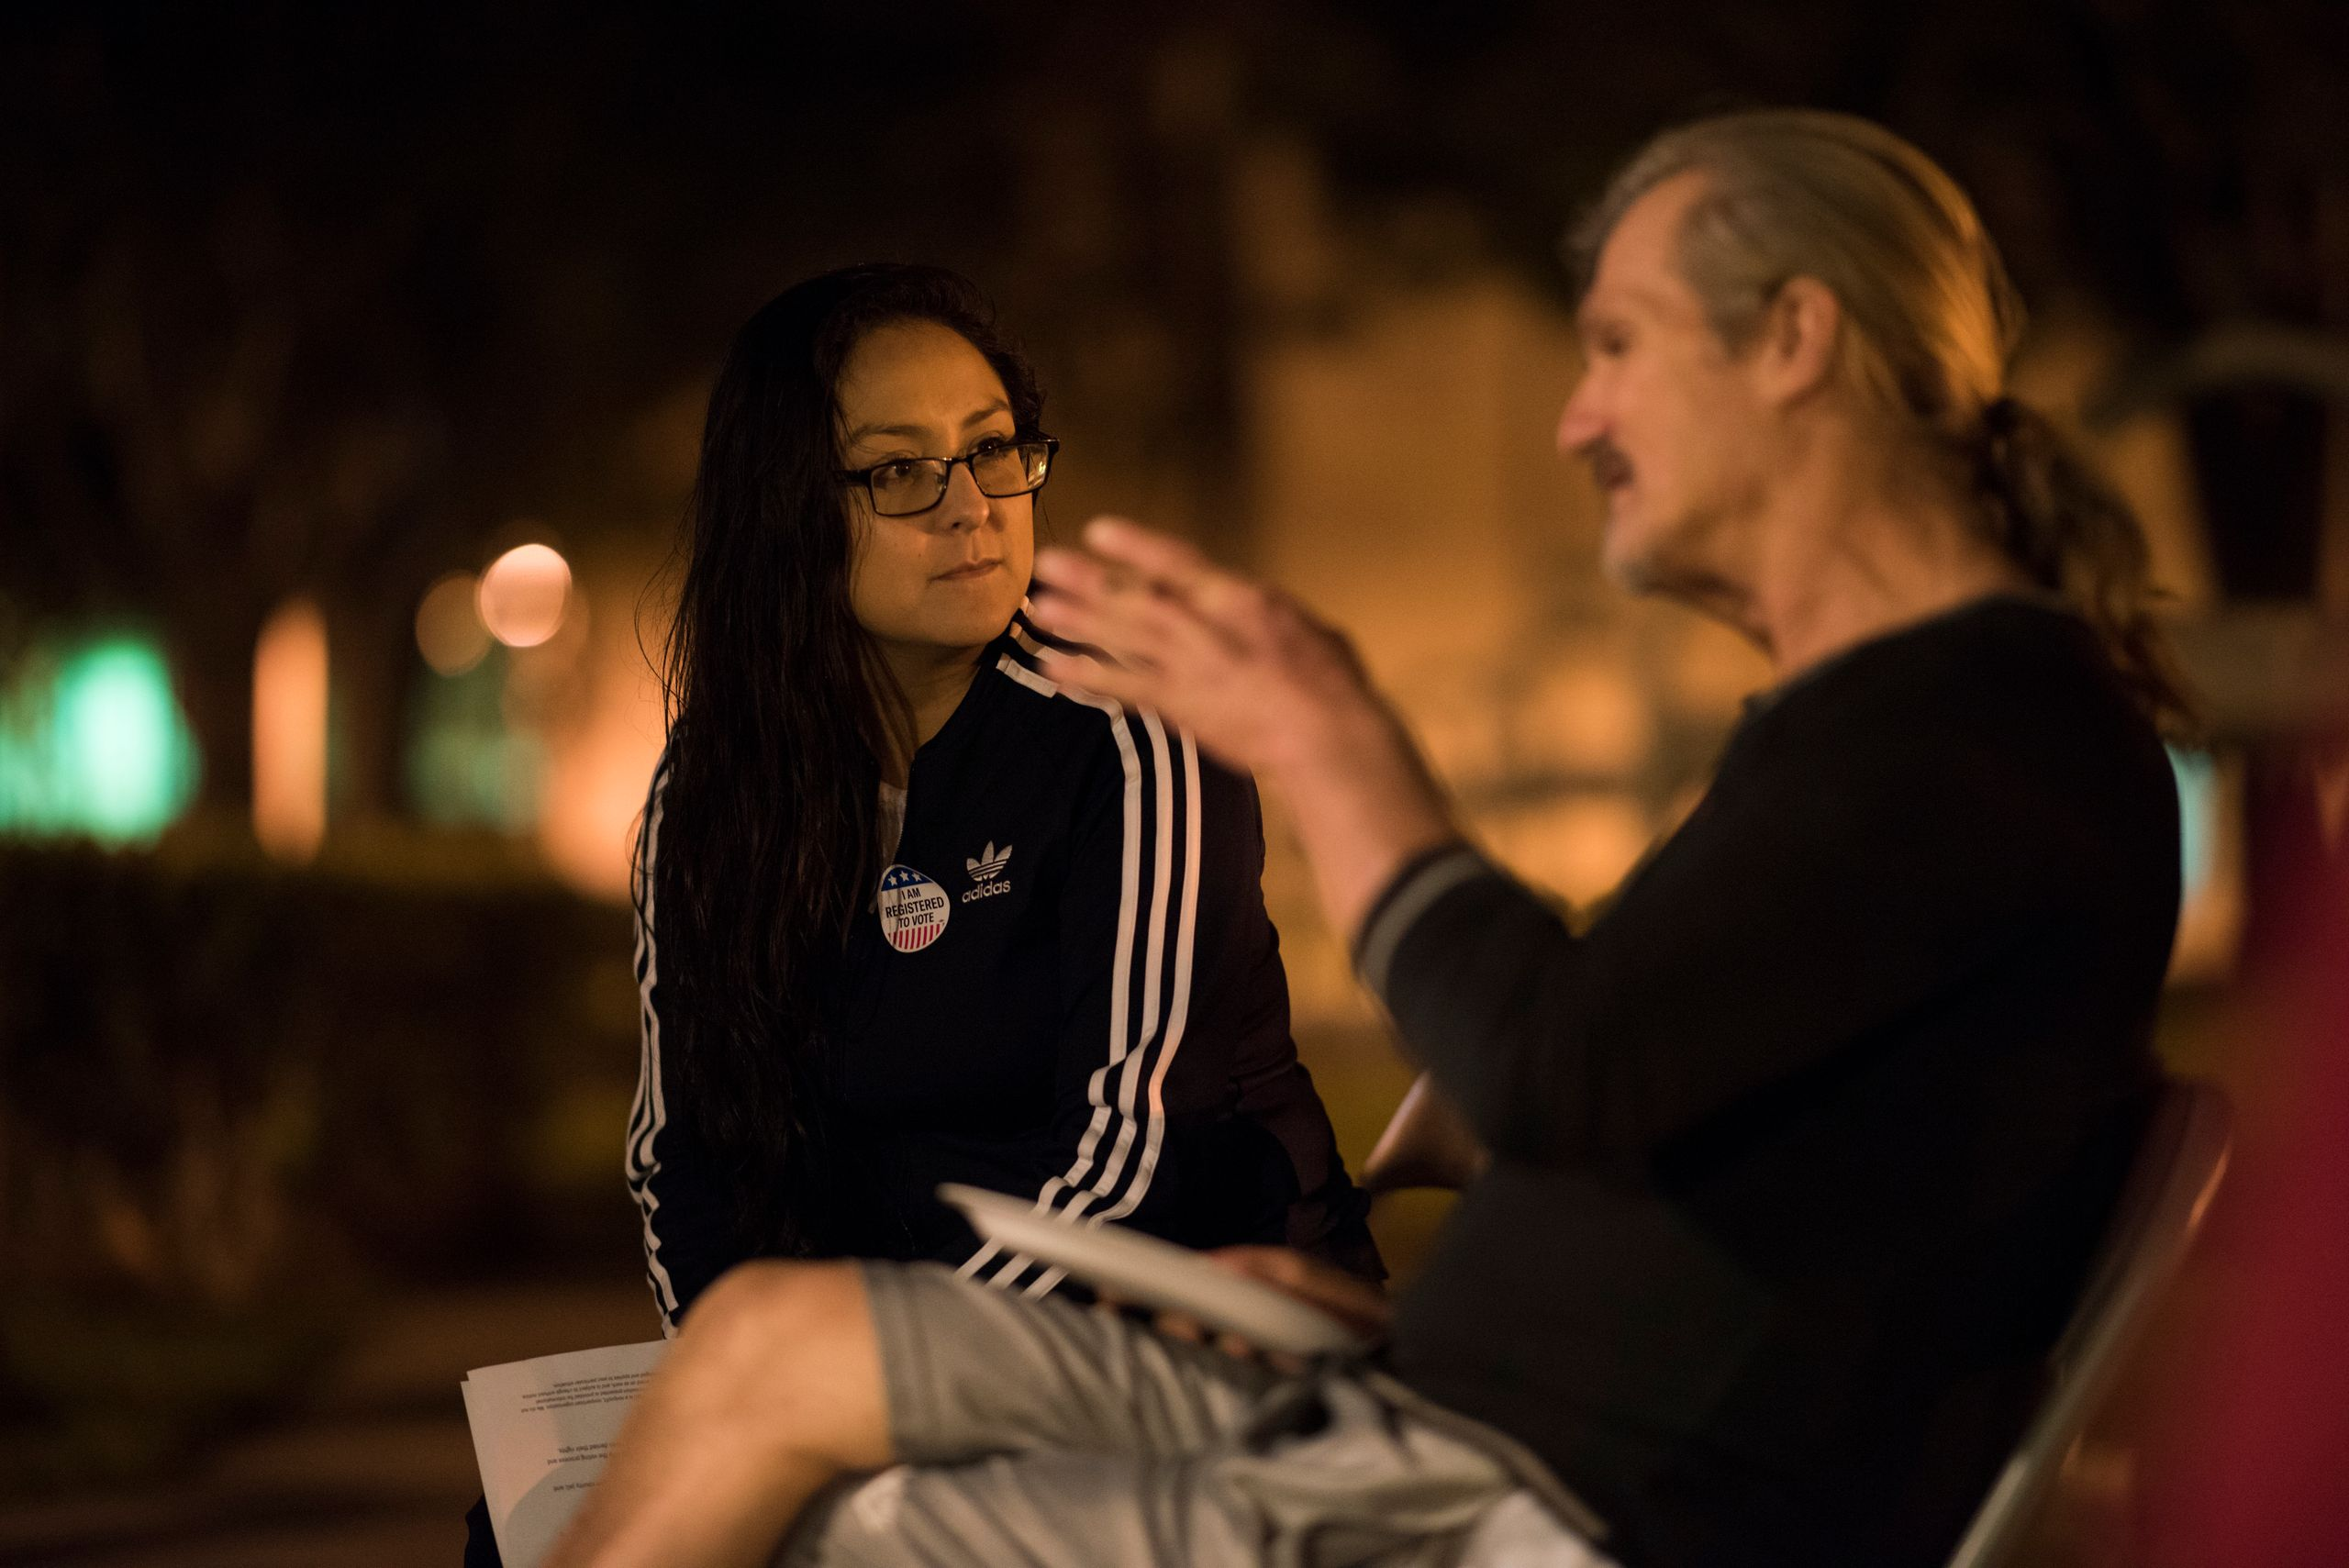 Daisy Ramirez, the ACLU's Orange County jail project coordinator, talks to Greg Compher, 58, about registering to vote and hi